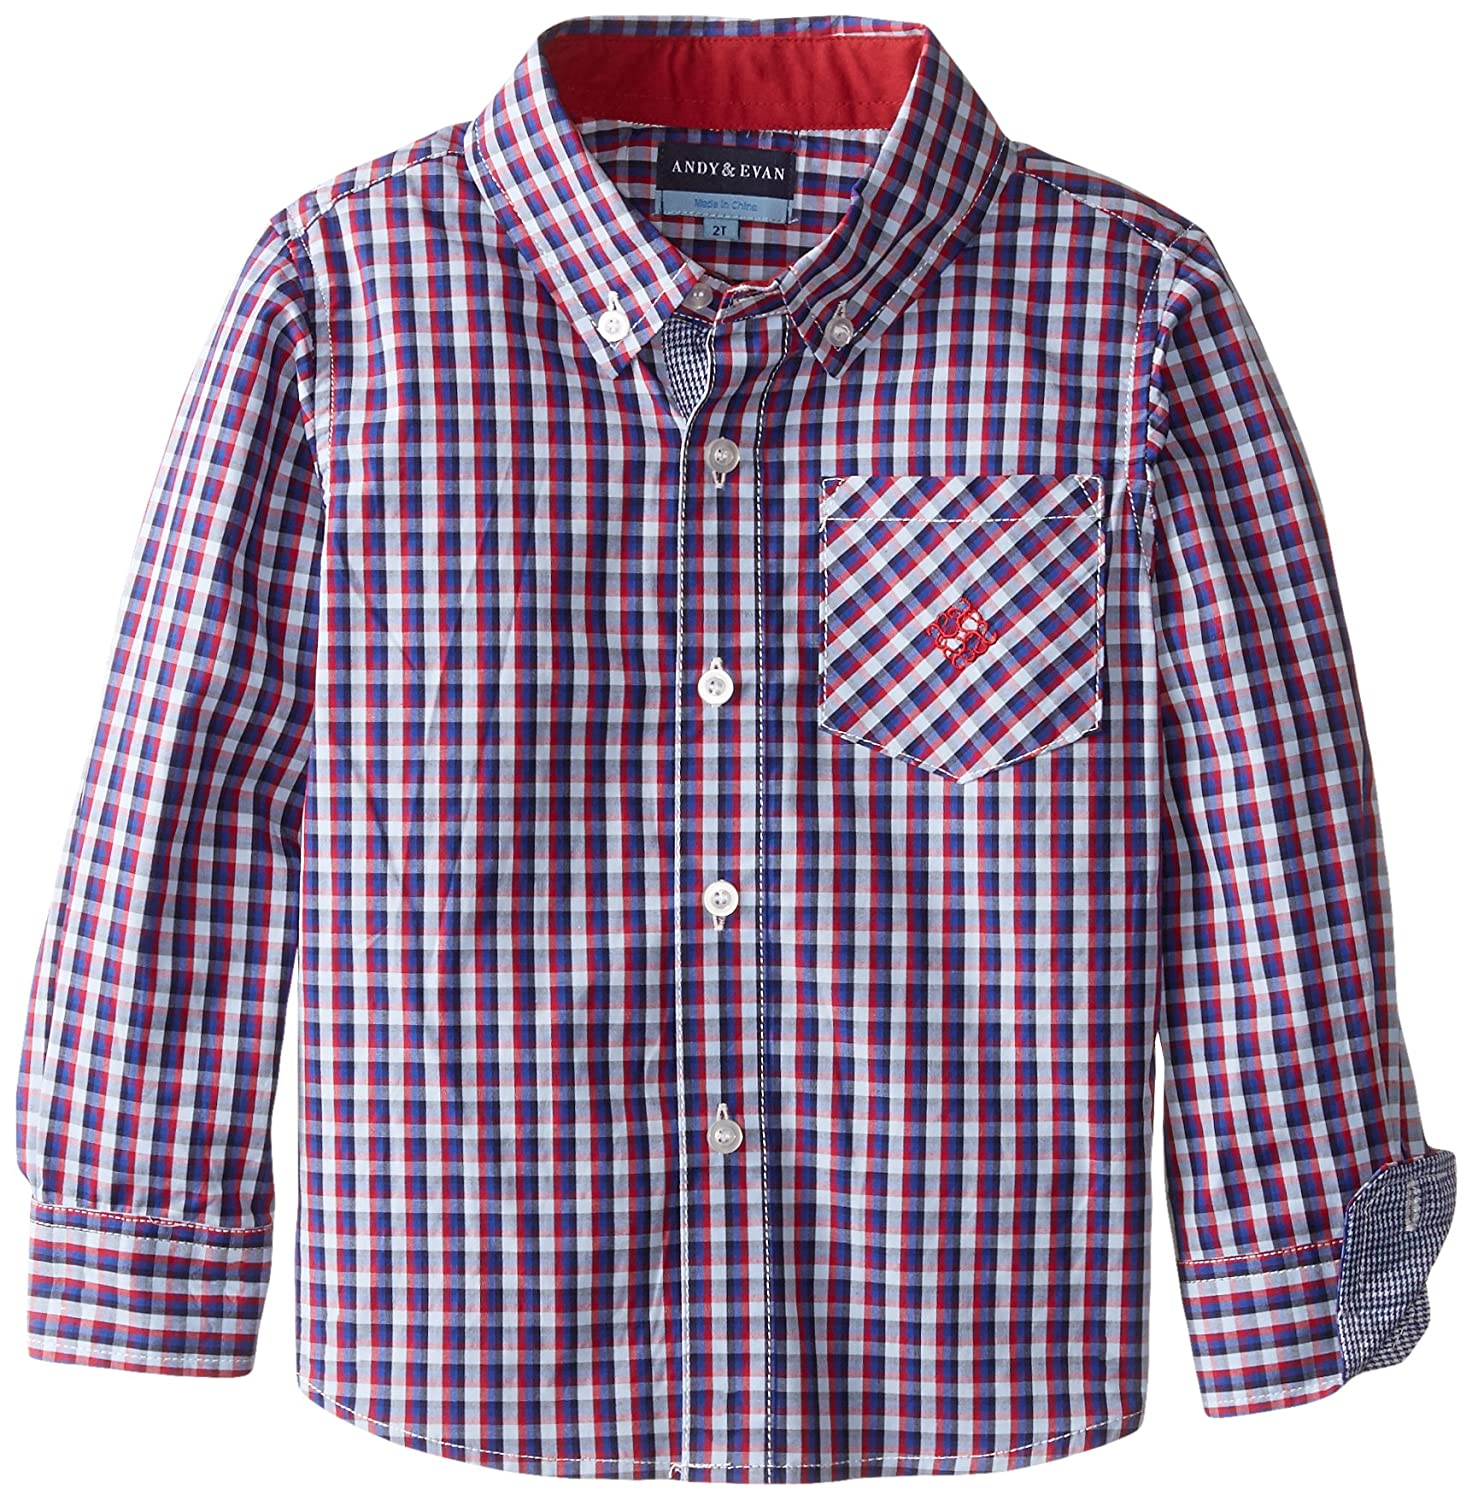 Andy & Evan Little Boys' Red-and-Blue Checkered Shirt 26381B-RDA